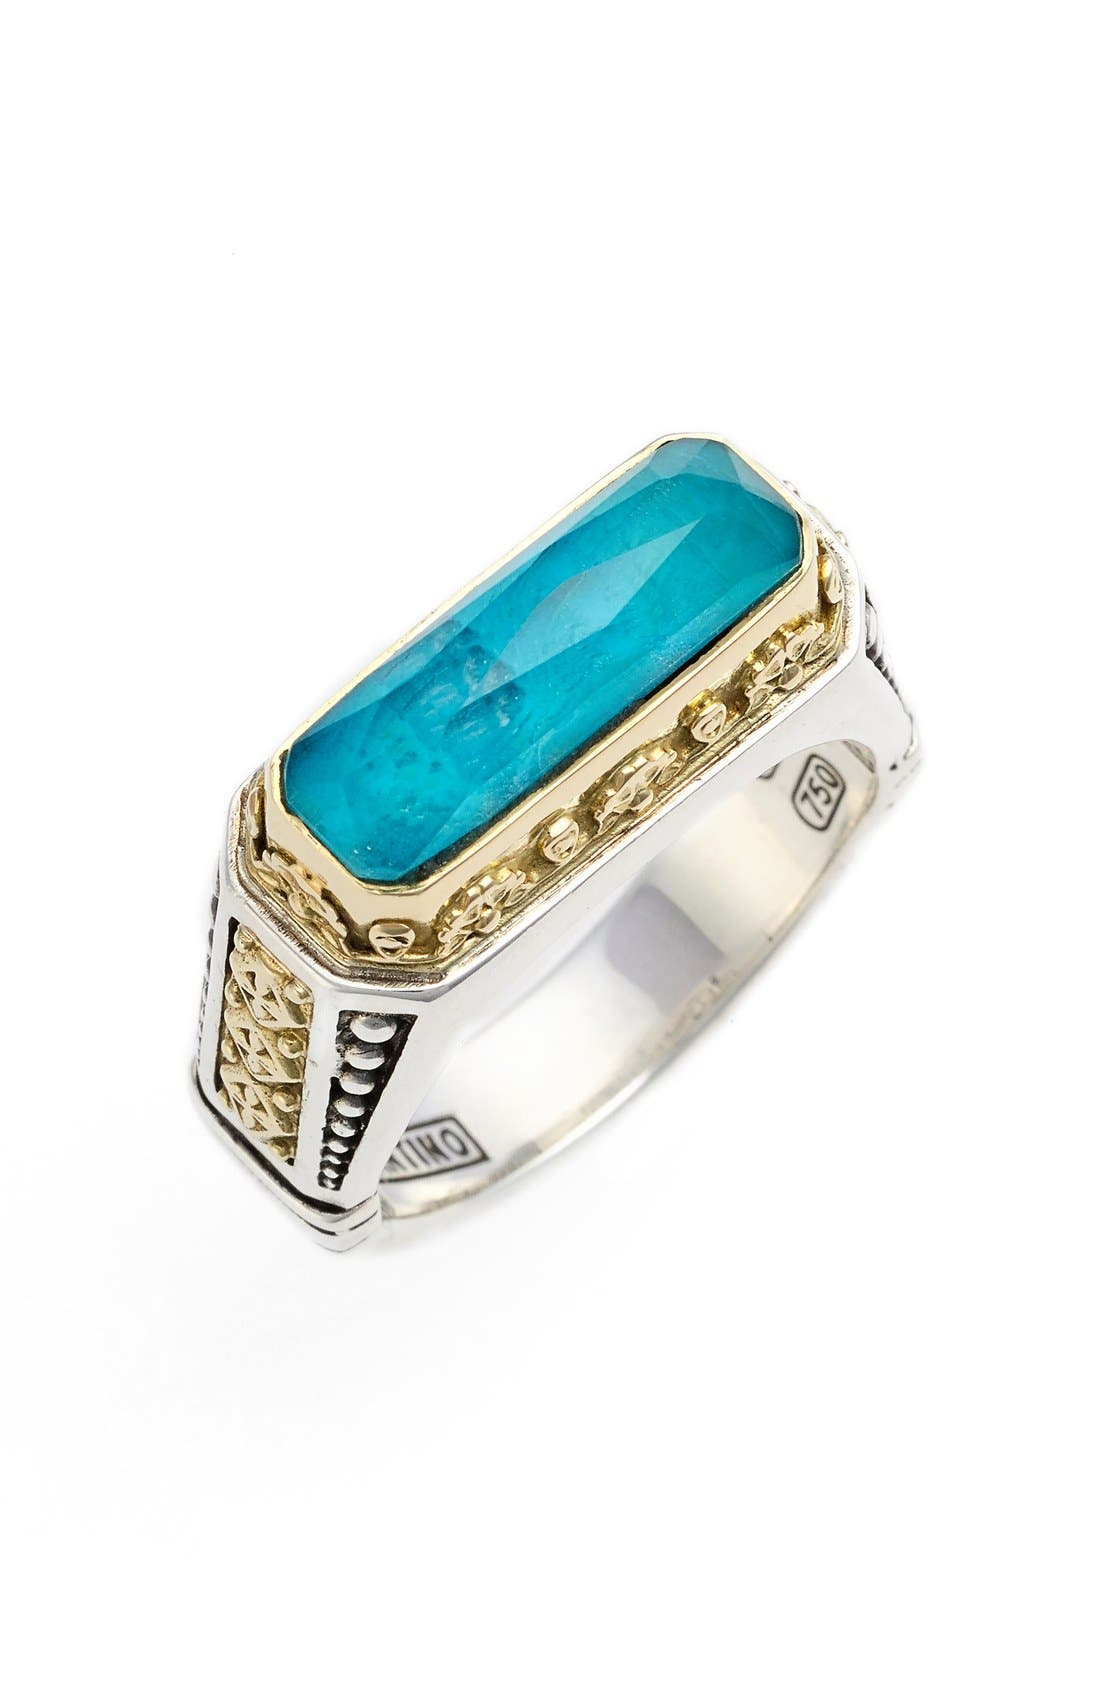 'Iliada' Etched Ring,                             Main thumbnail 1, color,                             Blue/ Green